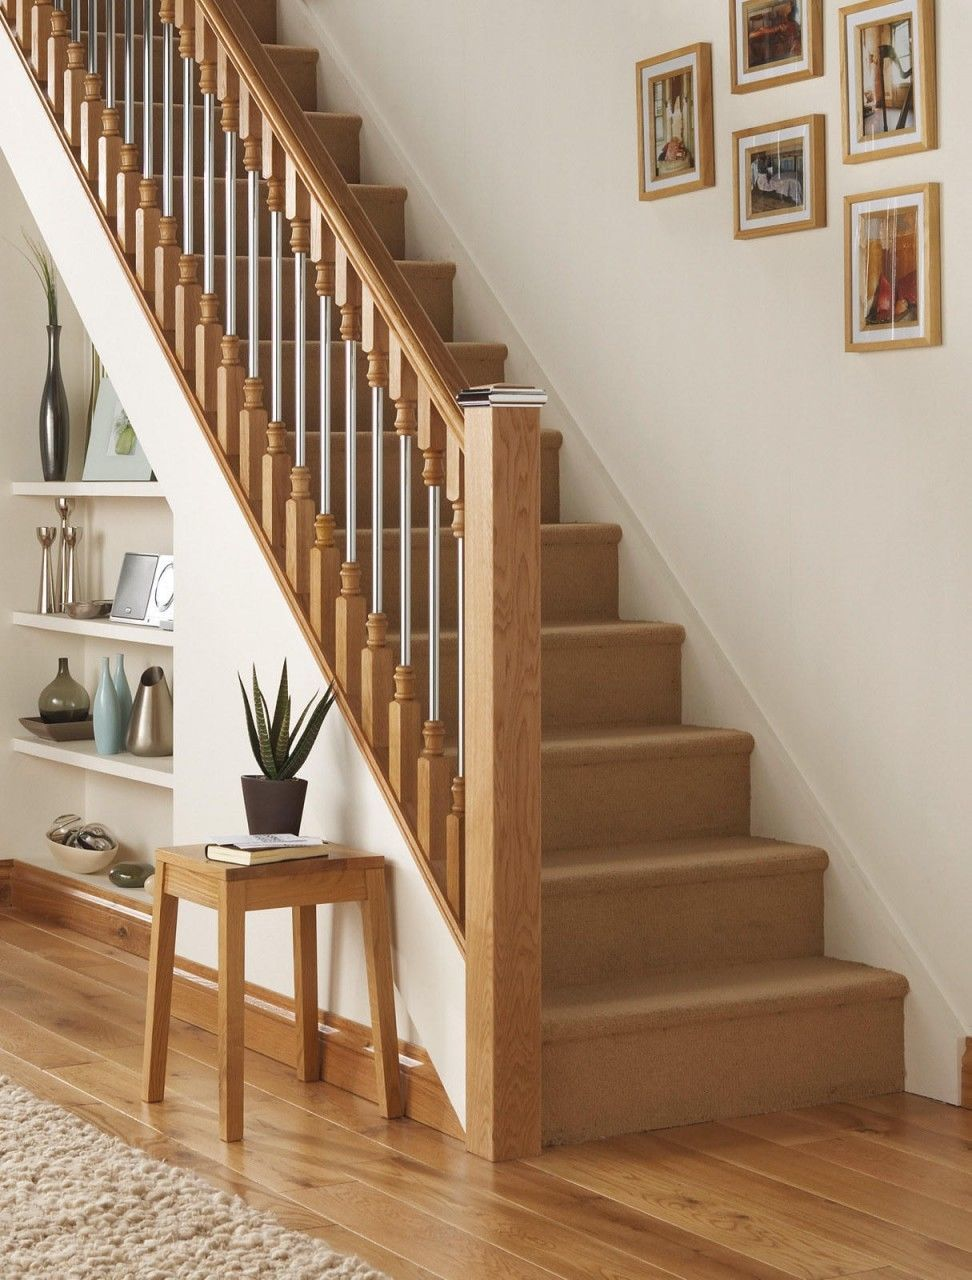 Best Axxys Solo Brushed Nickel Oak Stair Newel Post Cap To 400 x 300